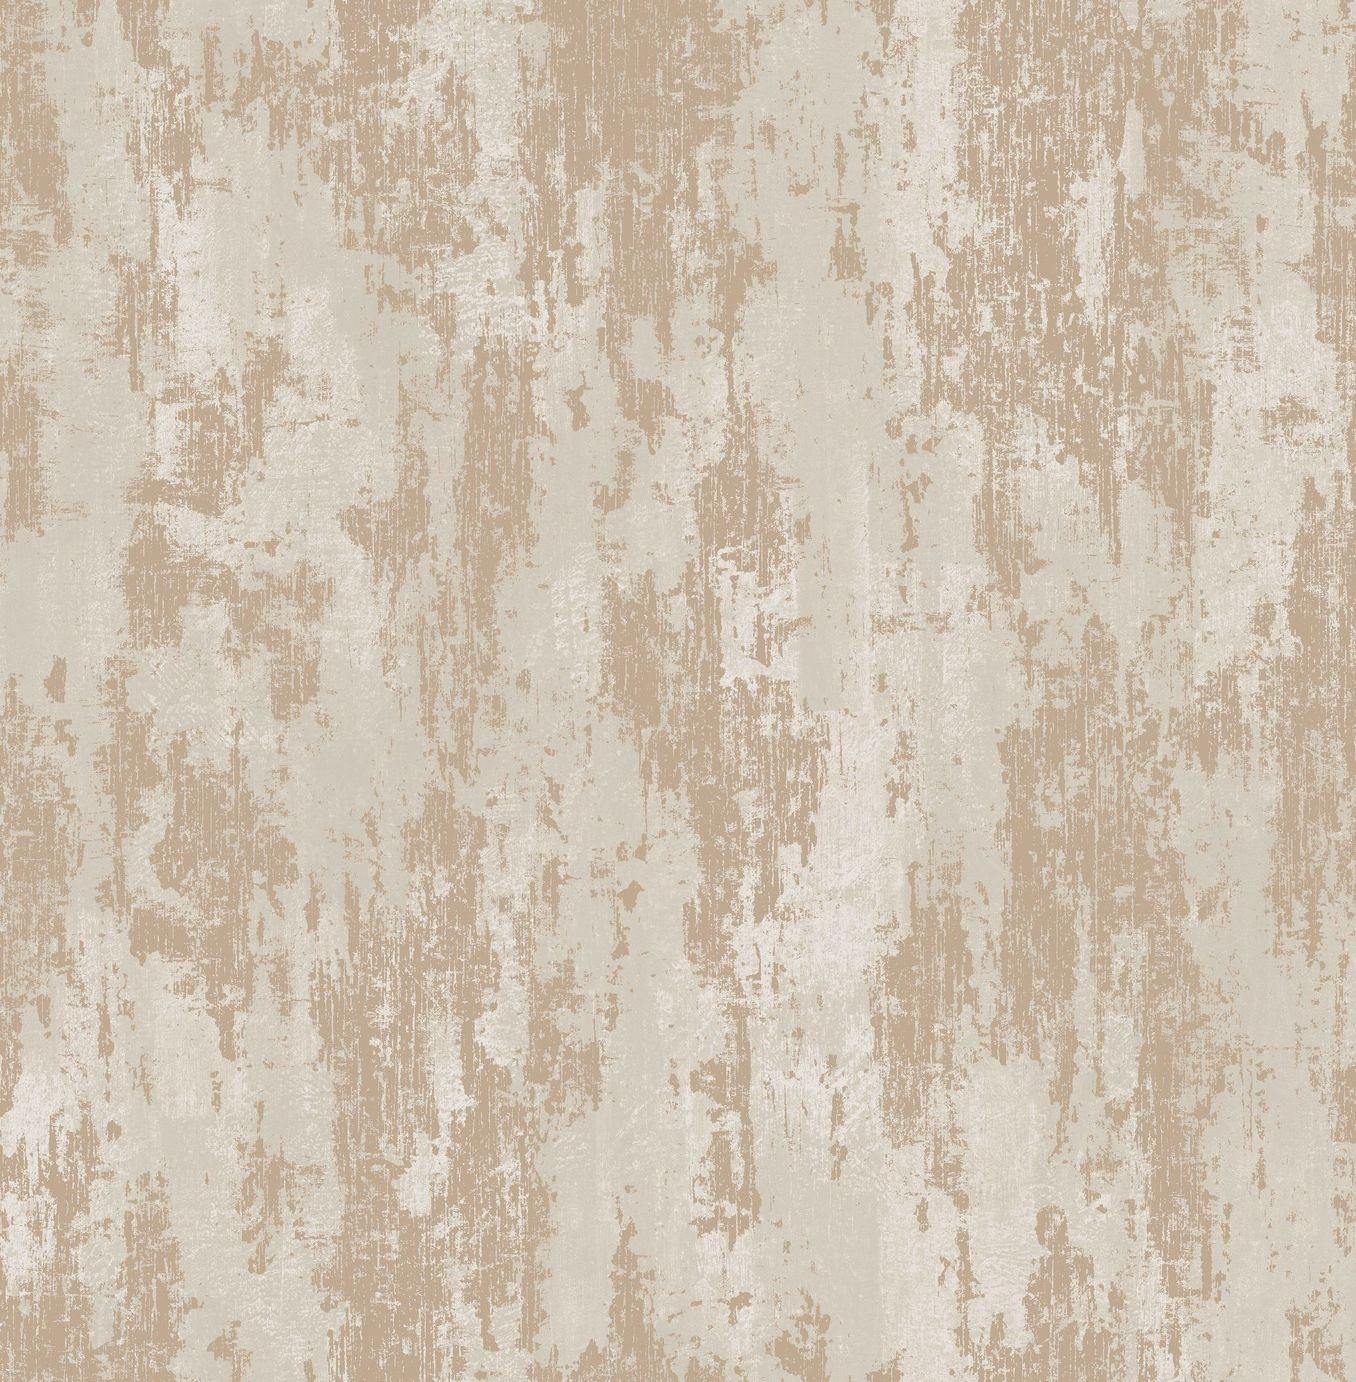 Image of Graham & Brown Boutique Industrial Texture Wallpaper Copper